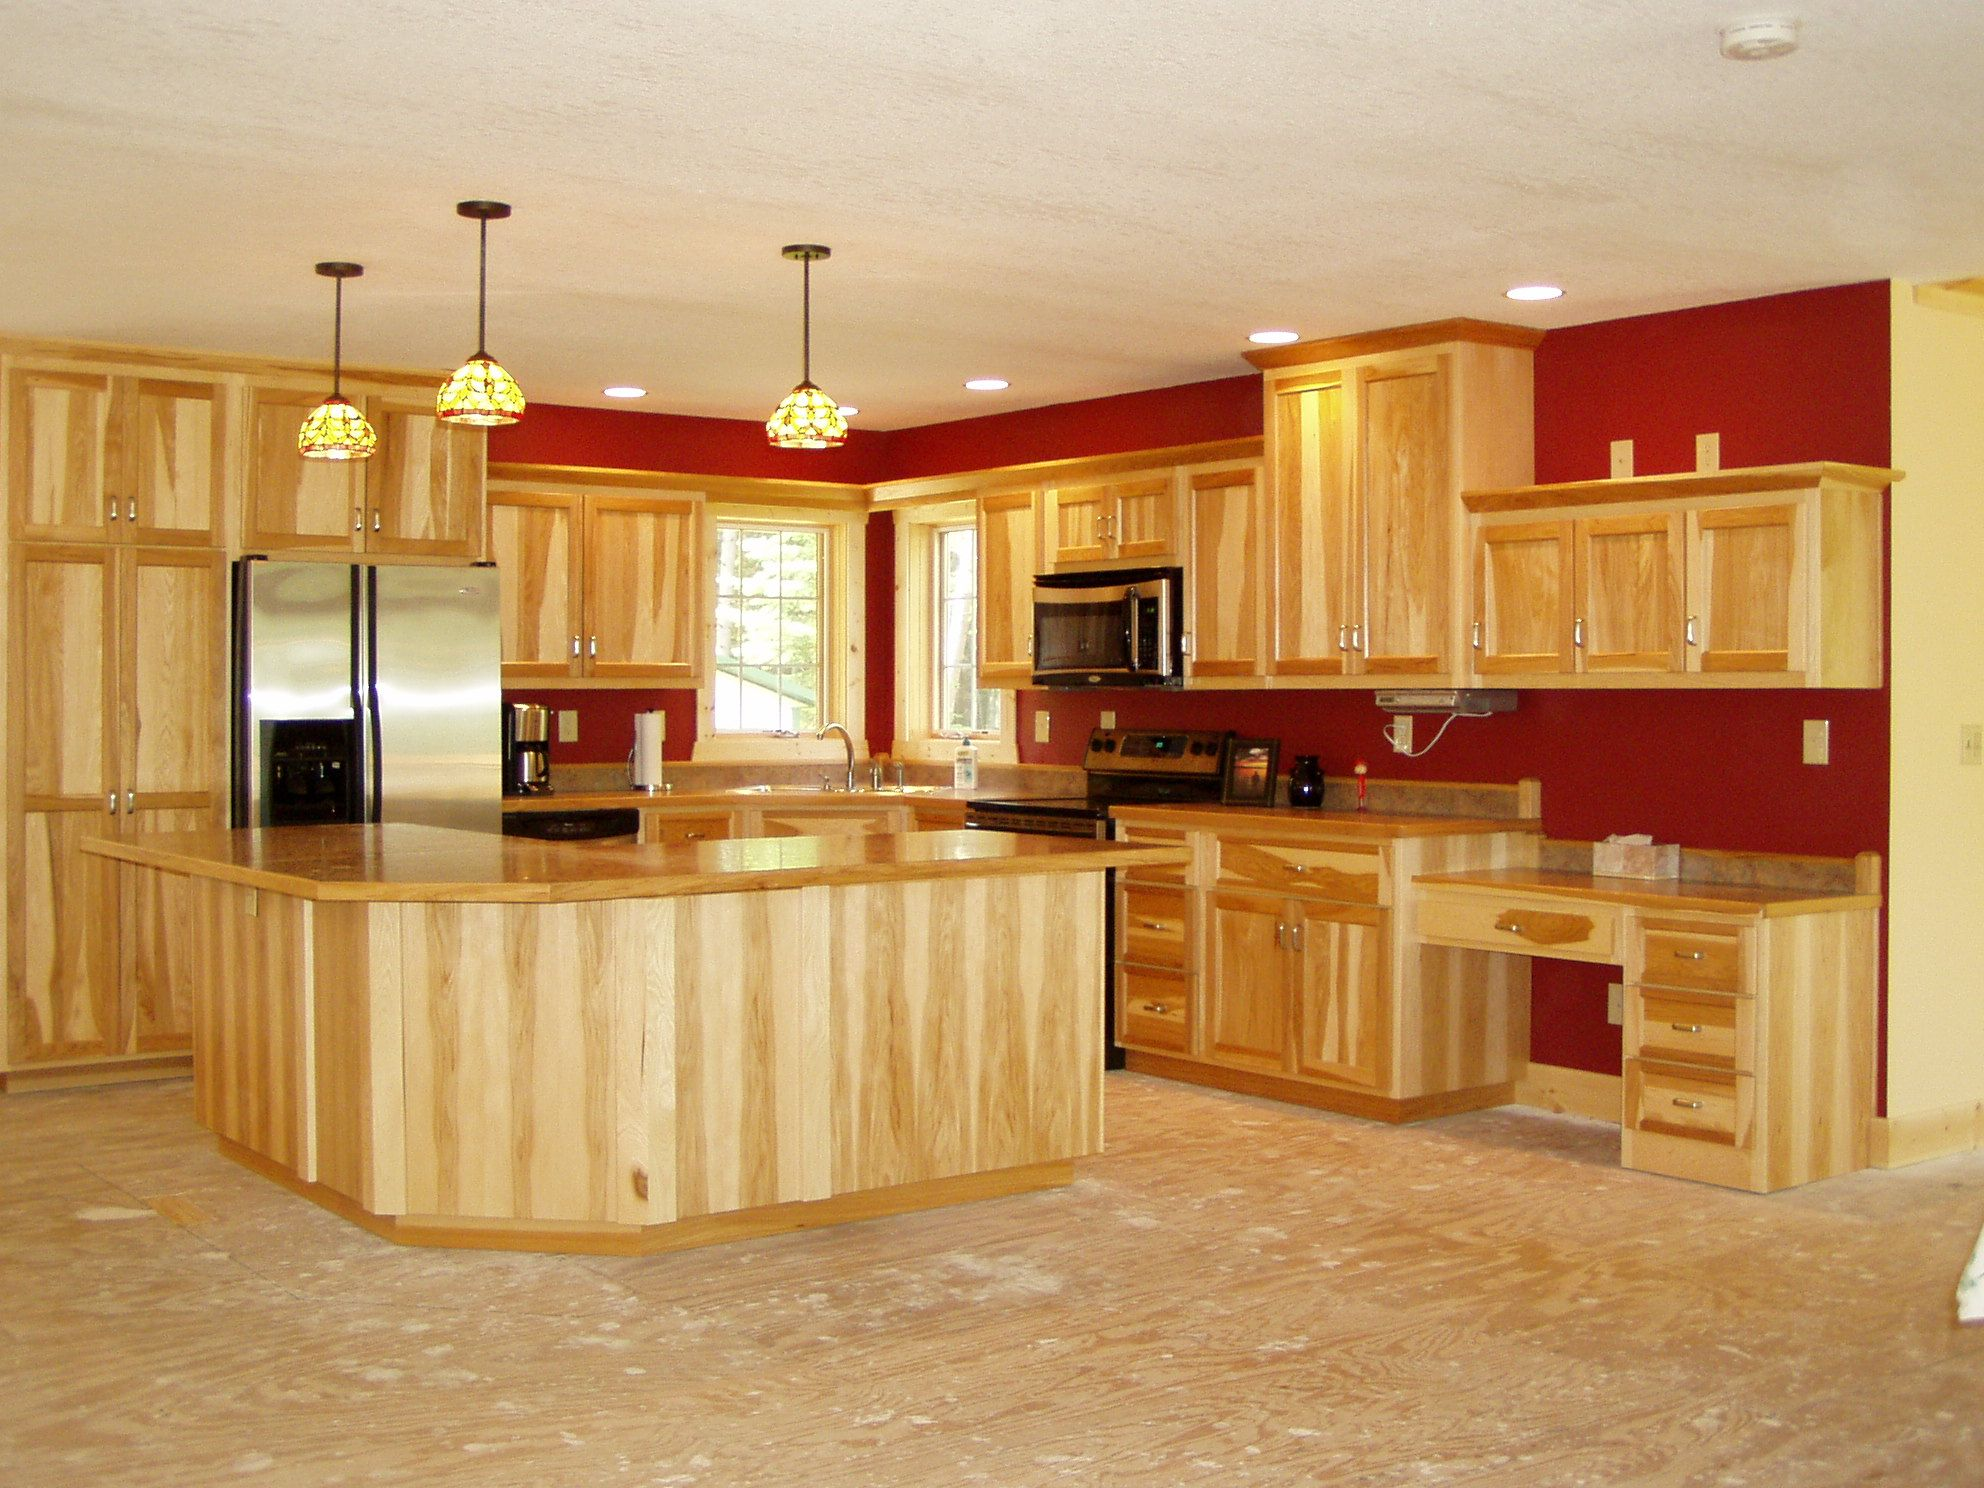 Denver Hickory Kitchen Cabinets Hickory Kitchens Hickory Kitchen Rustic Hickory